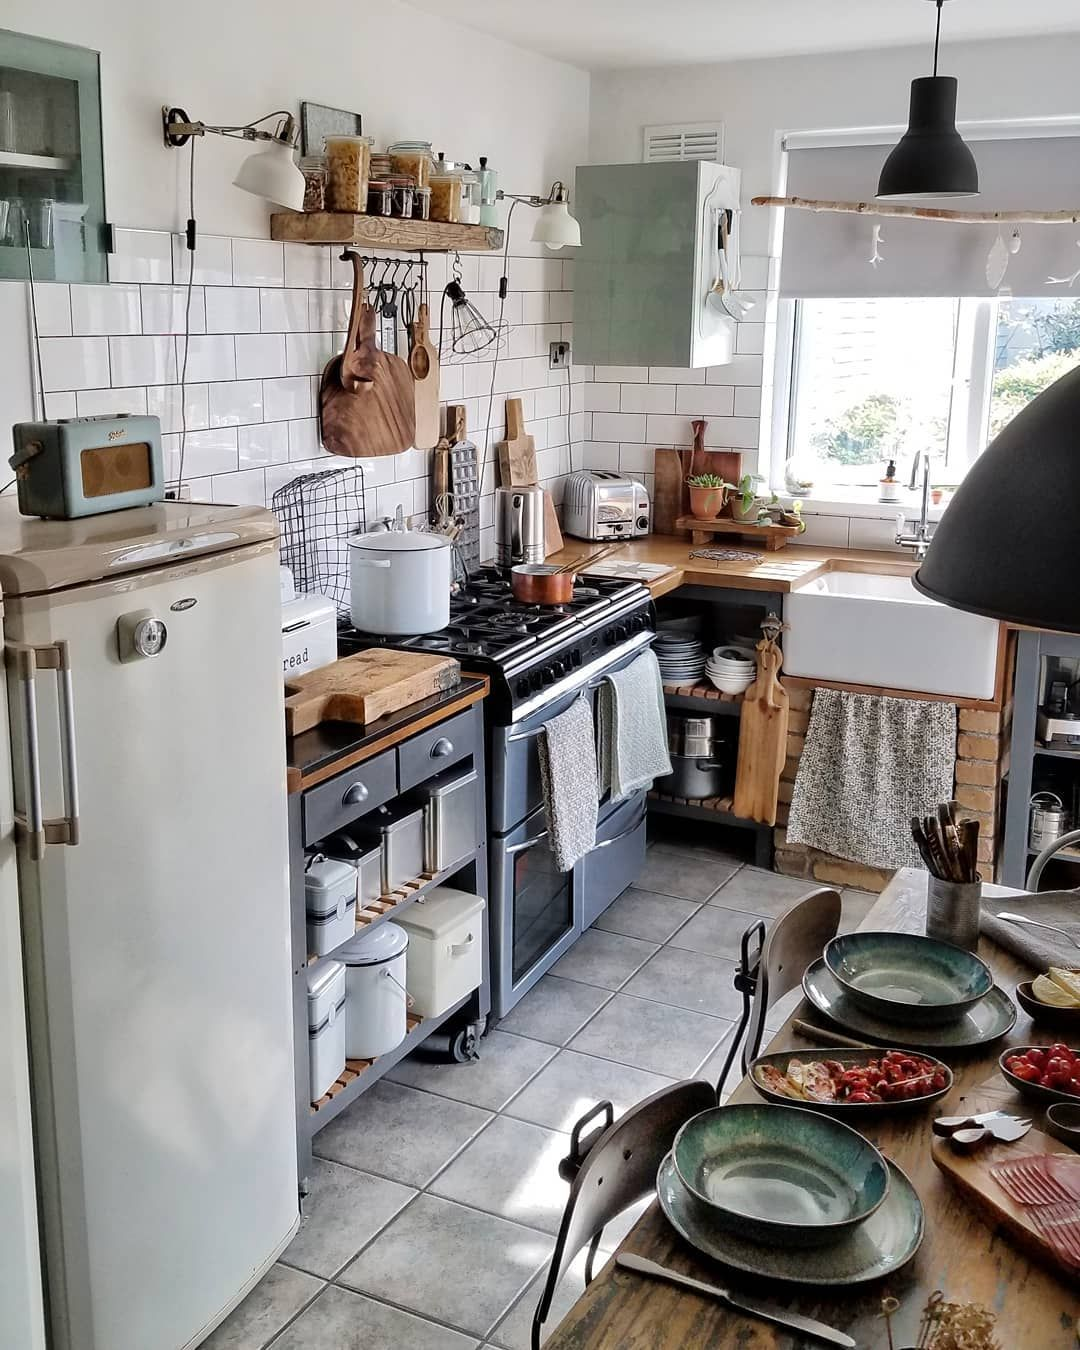 image may contain kitchen indoor and food bohemian kitchen kitchen design interior design on boho chic interior design kitchen id=53626